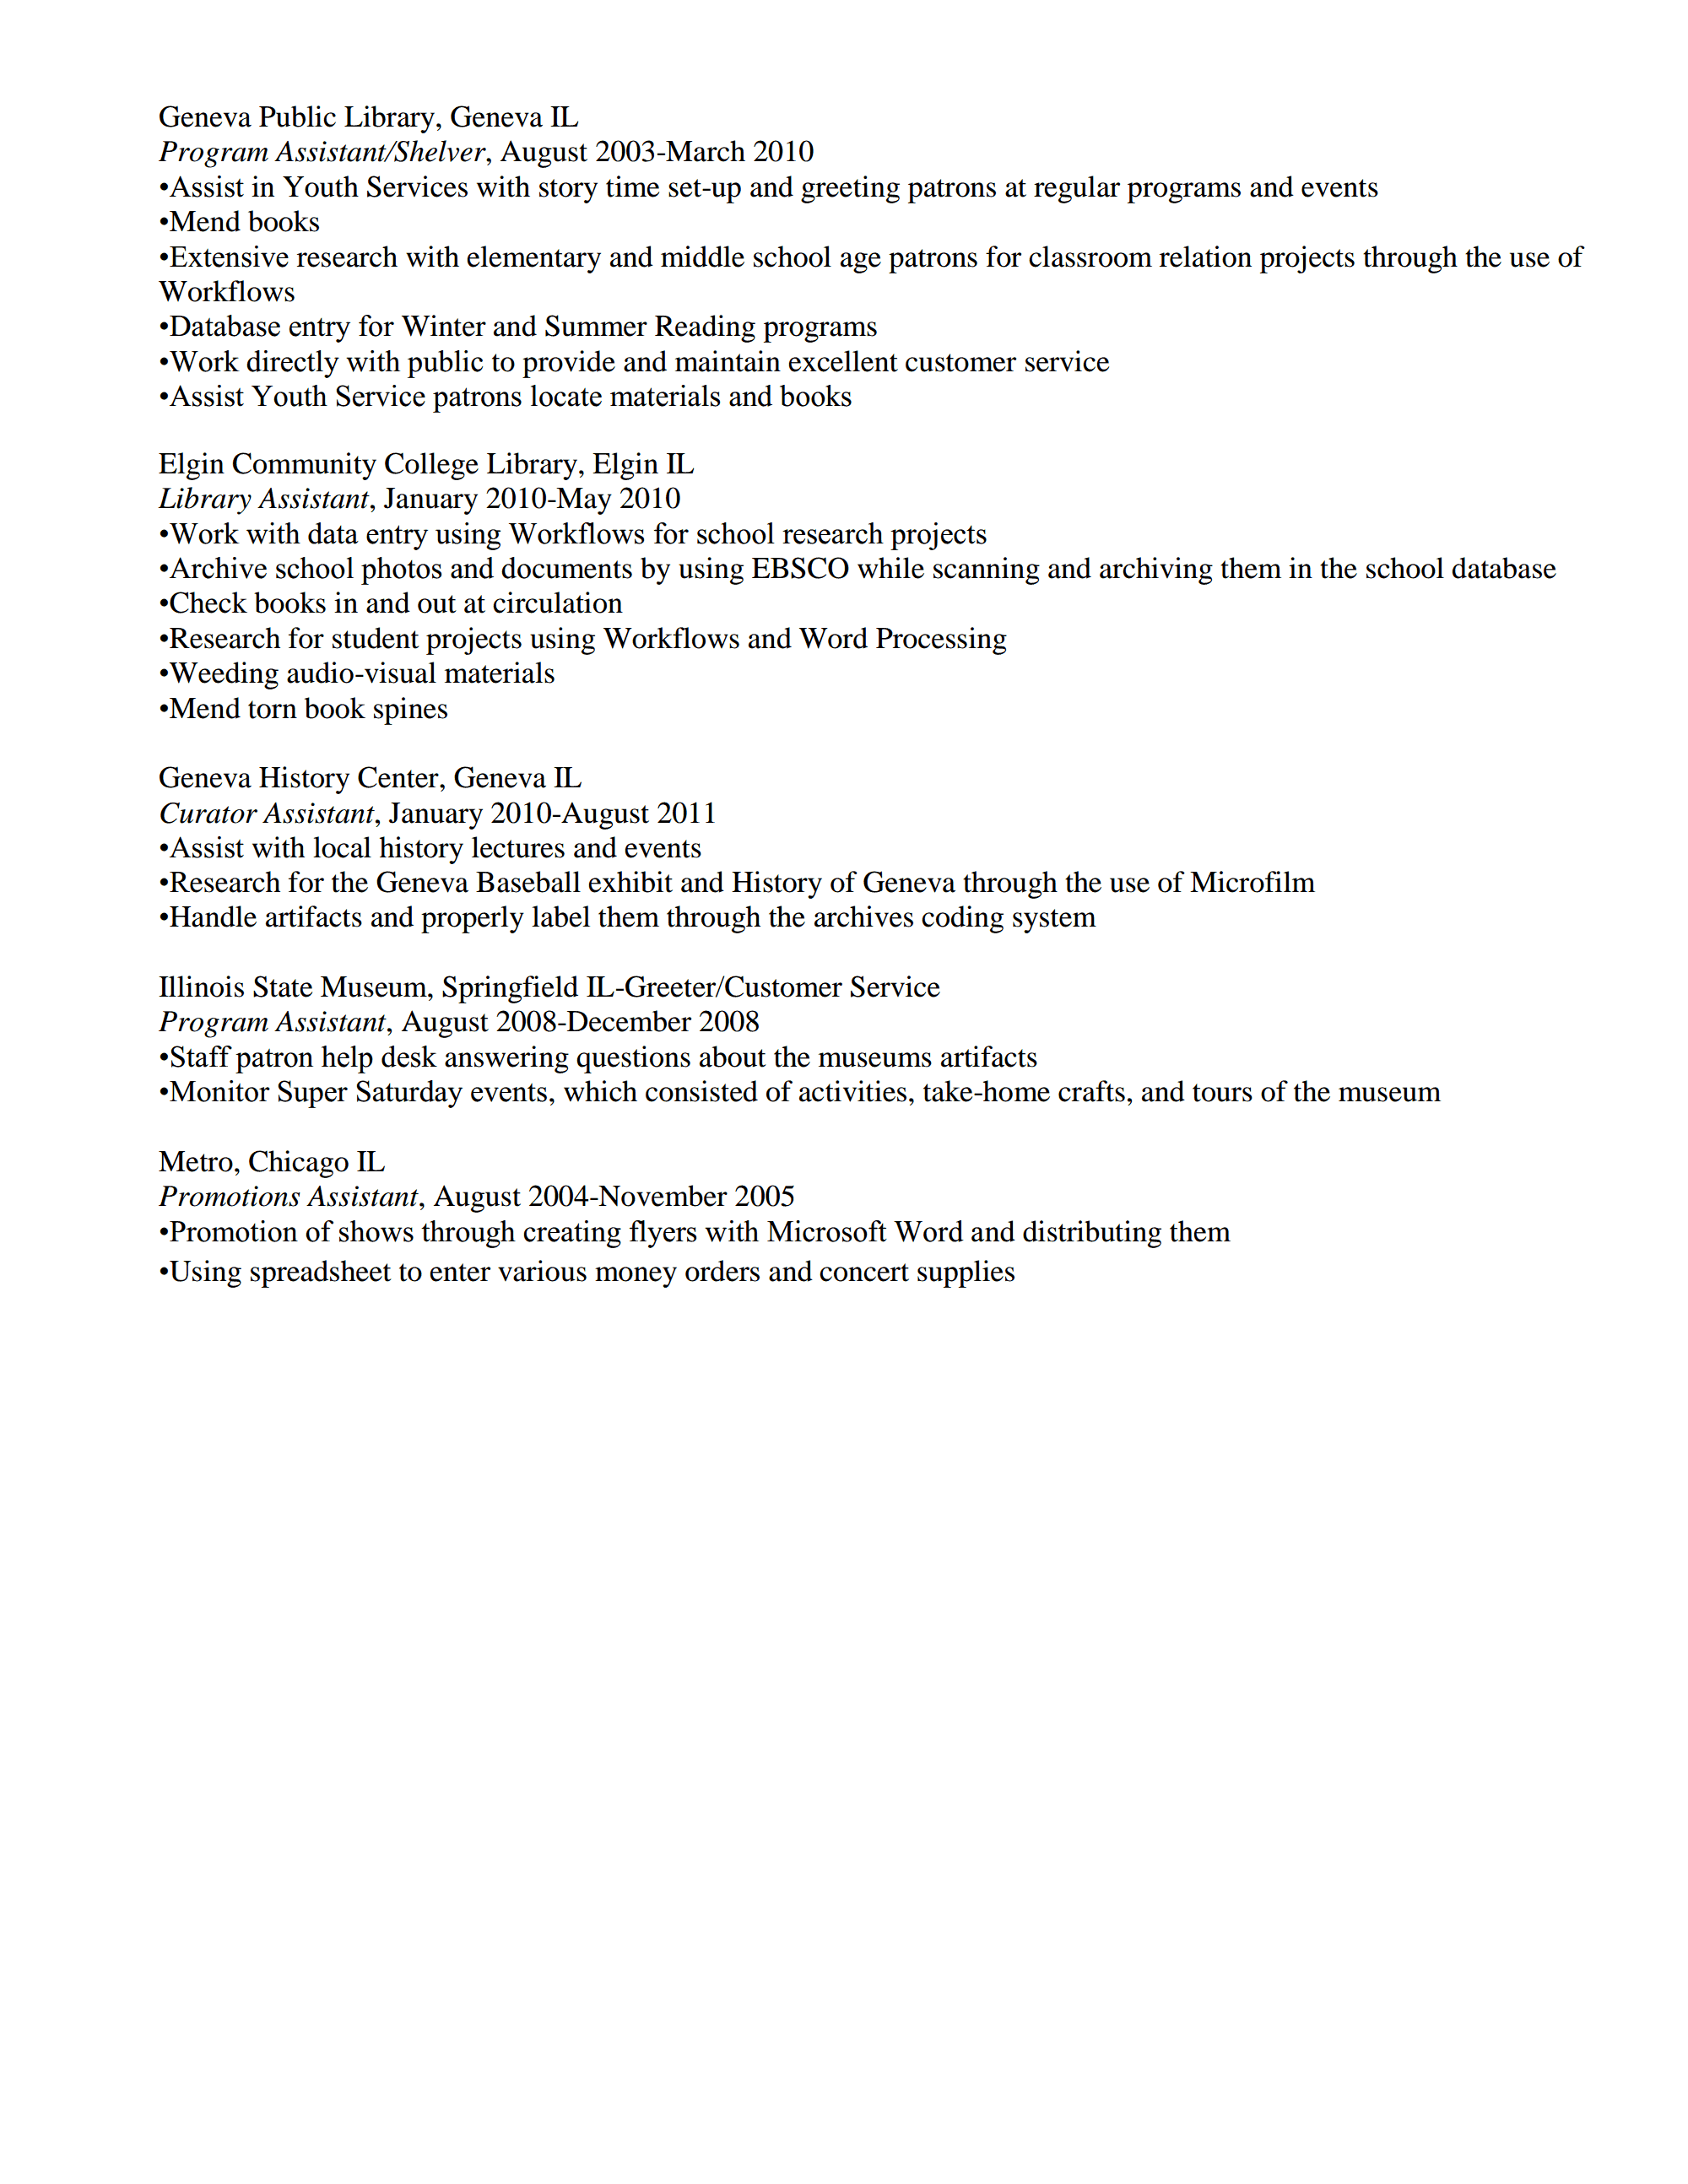 for public review matthew johnson - Librarian Cover Letter Sample